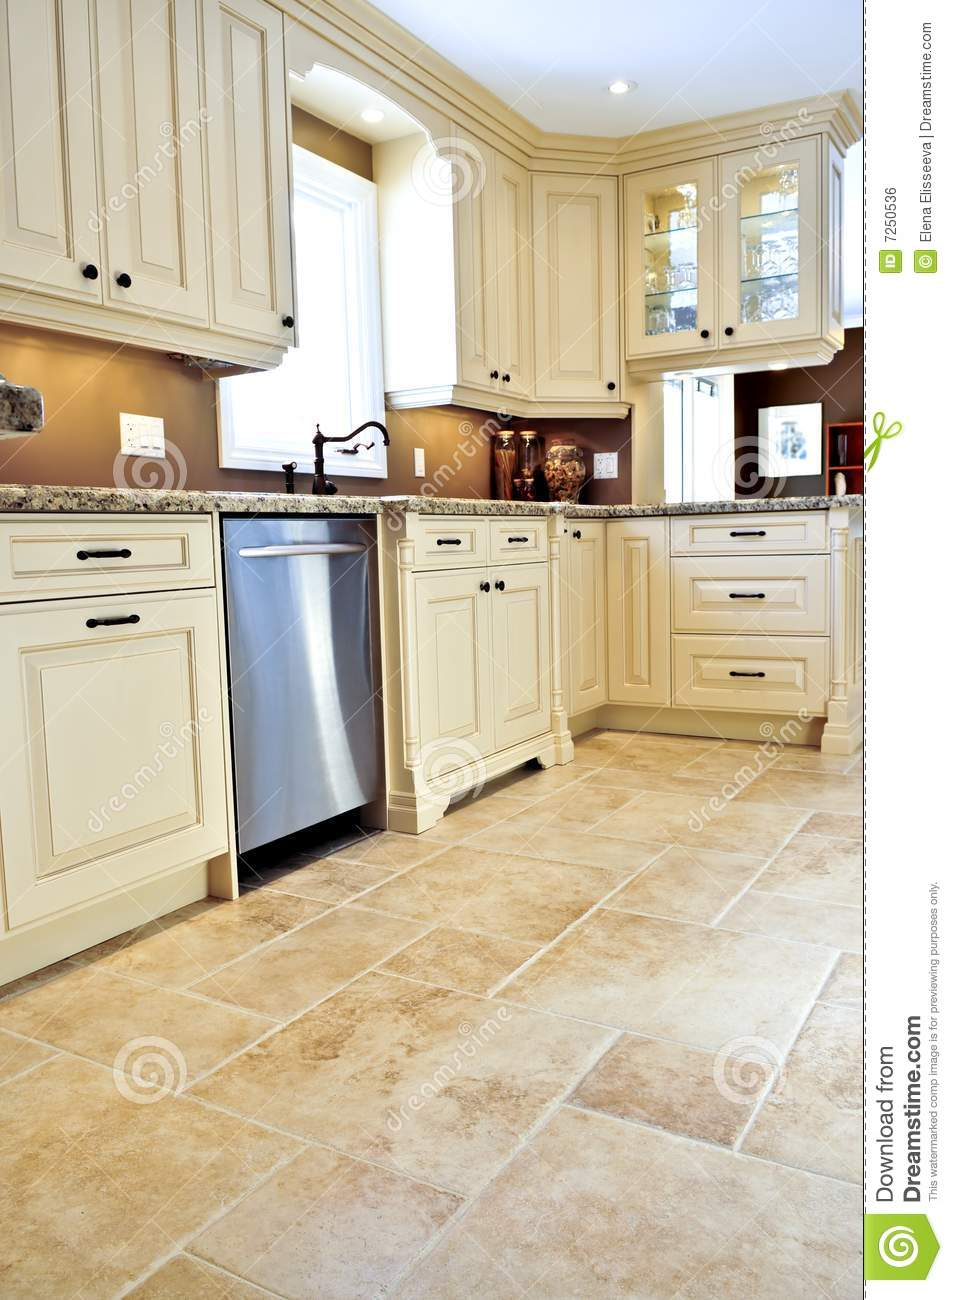 White Tile Floor Kitchen Tile Floor In Modern Kitchen Royalty Free Stock Image Image 7250536